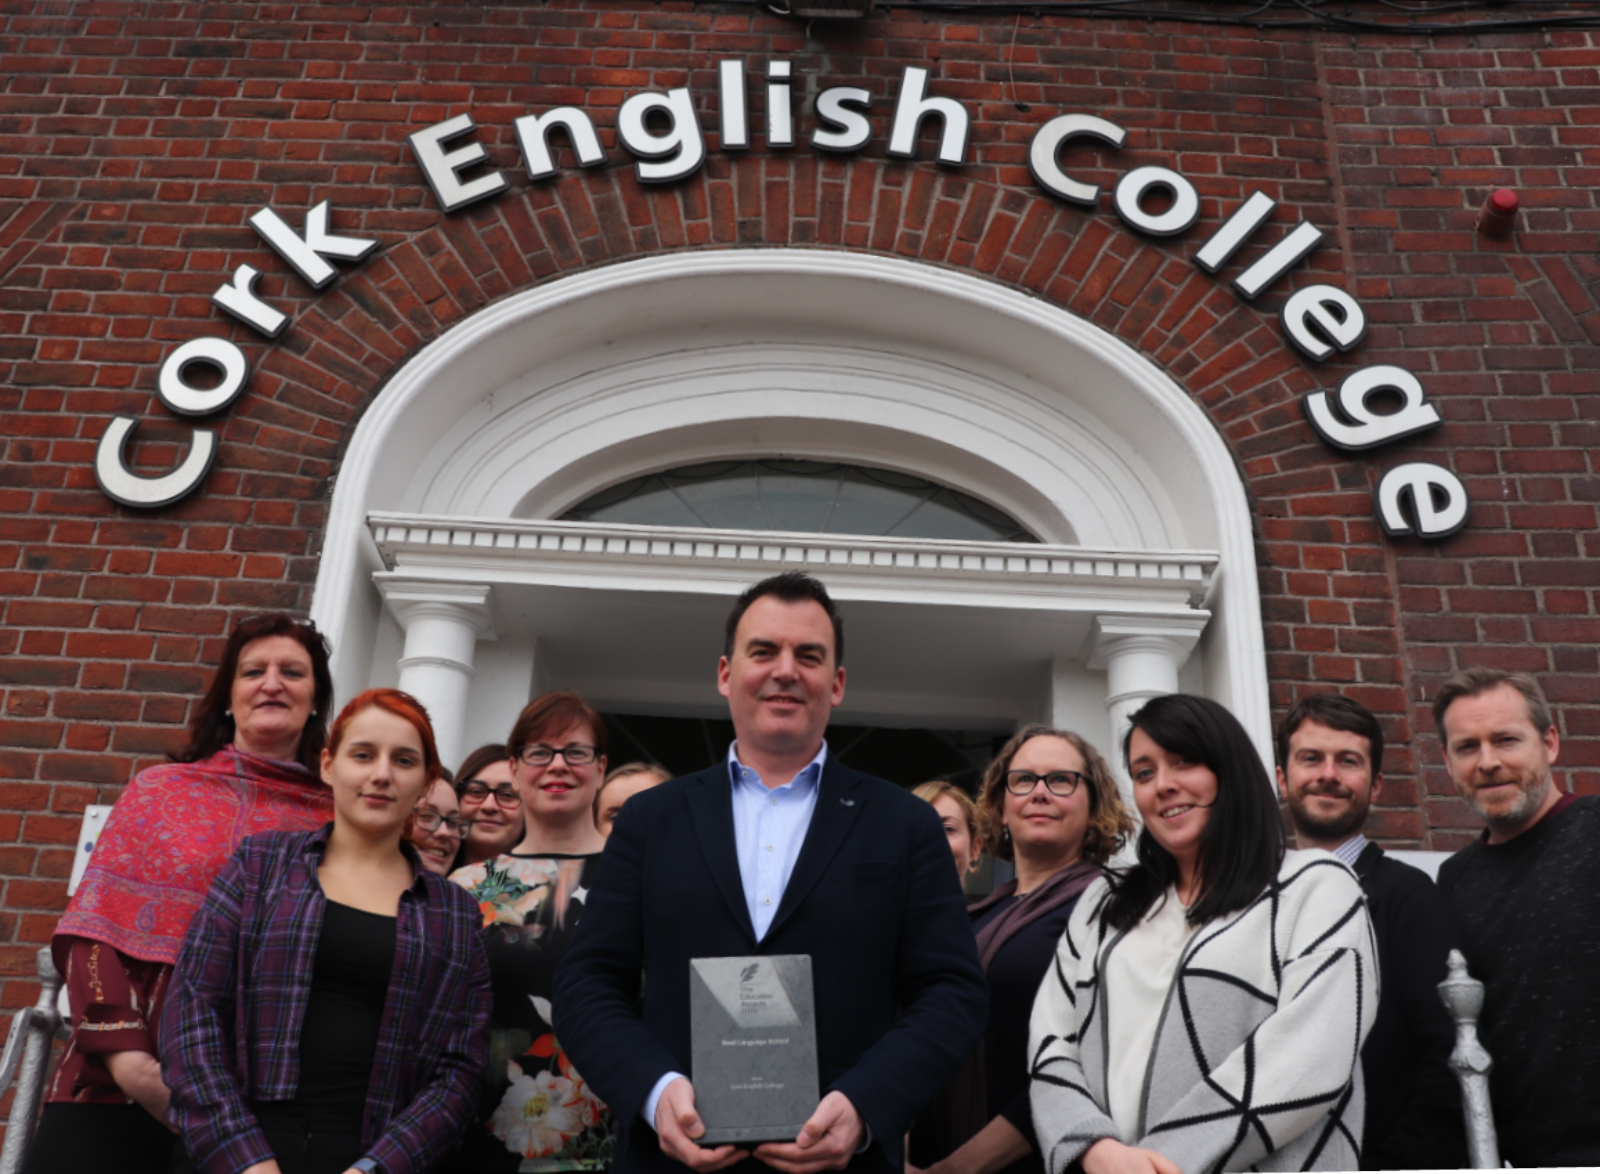 Best Language School Award for CEC-Cork English College